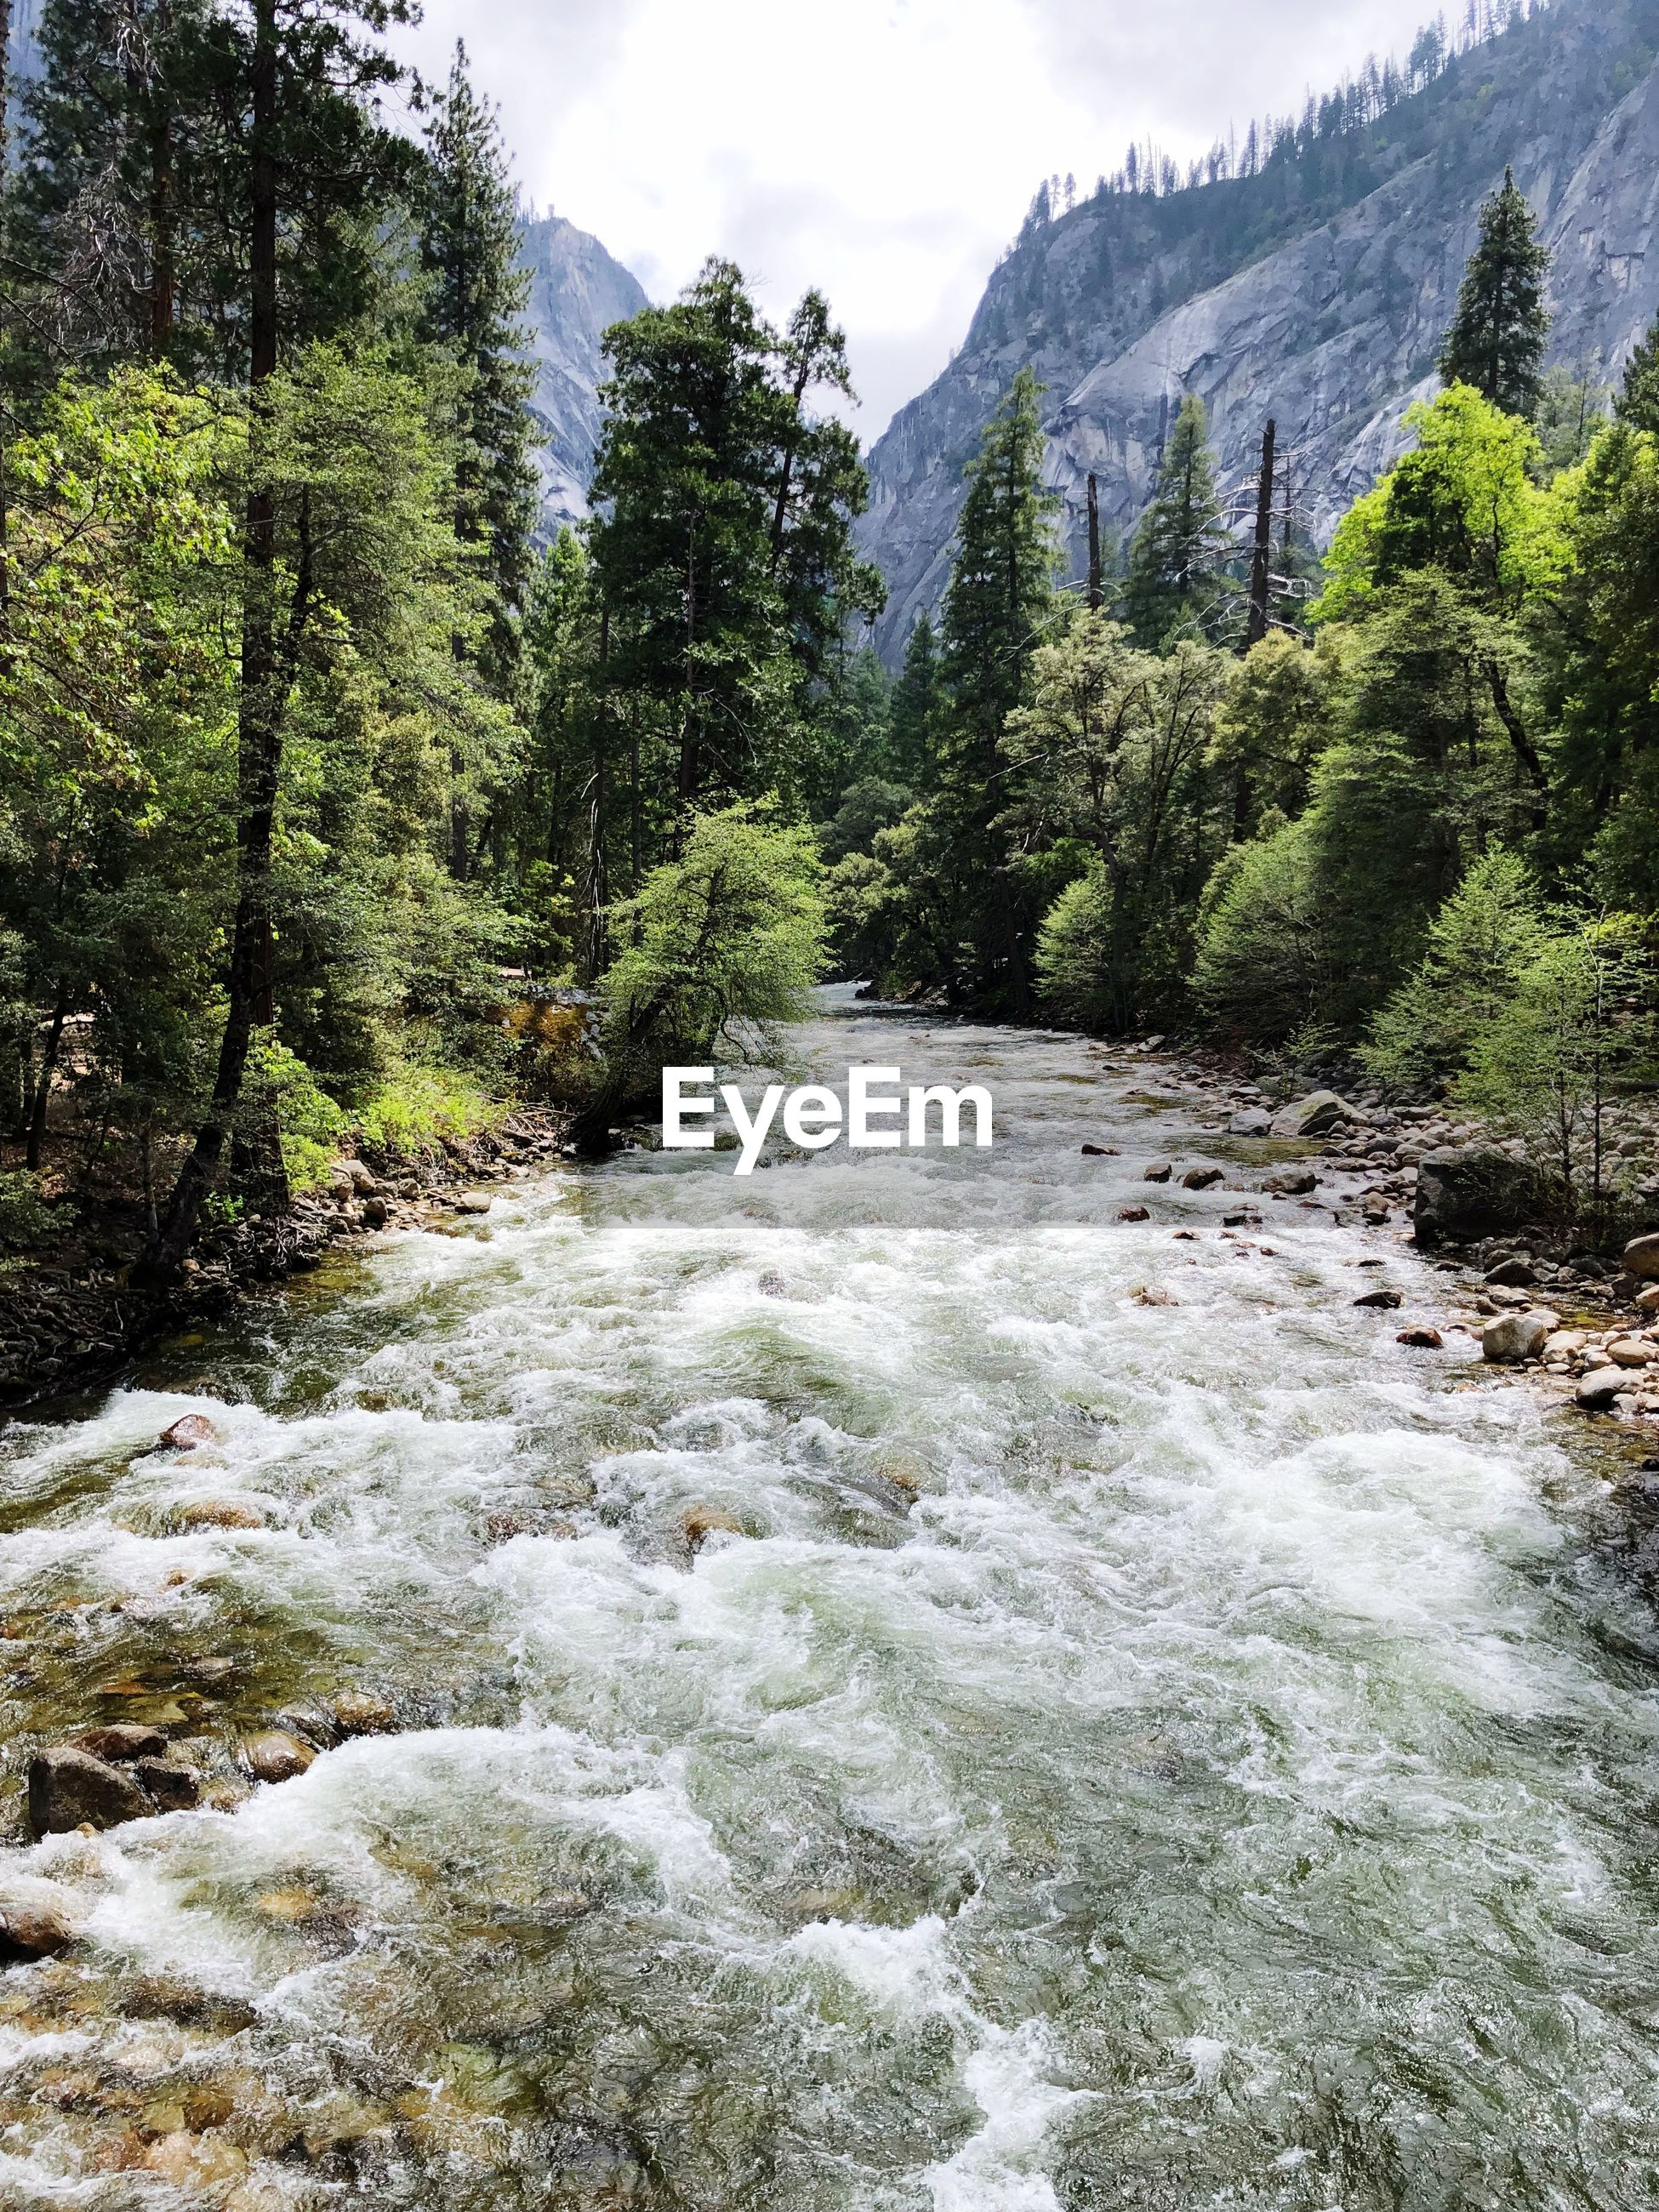 VIEW OF RIVER FLOWING THROUGH FOREST